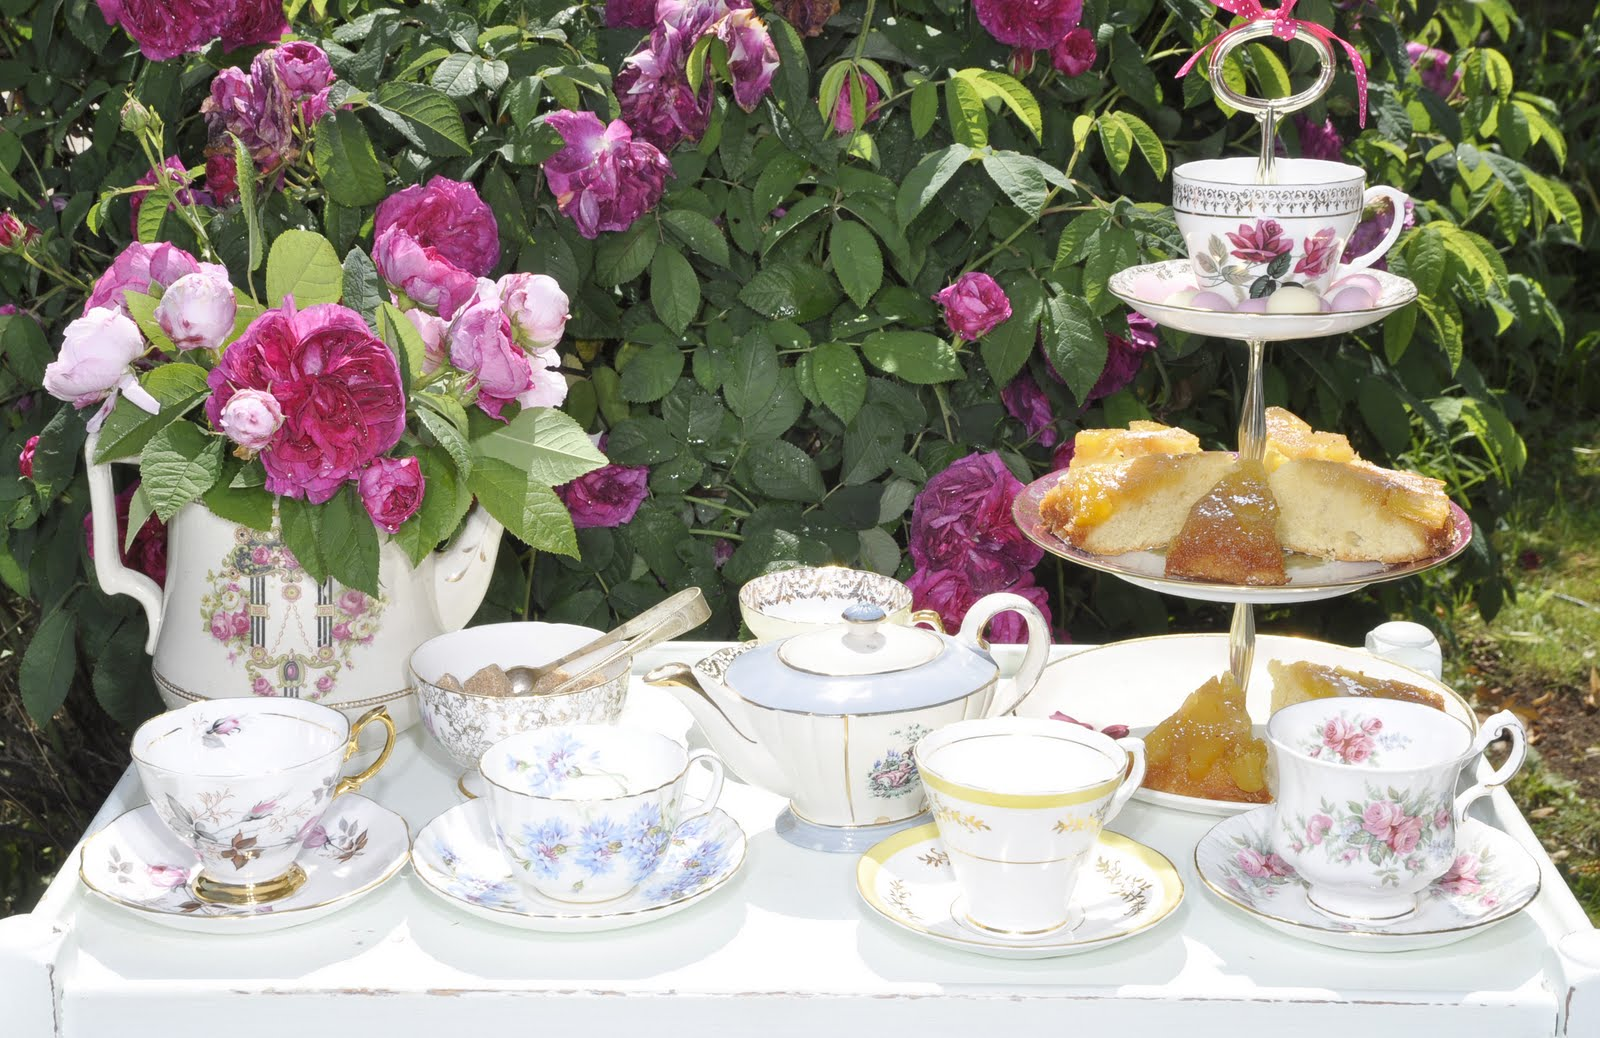 Teaparty: Lavinia's Tea Party: What A Week In Cirencester